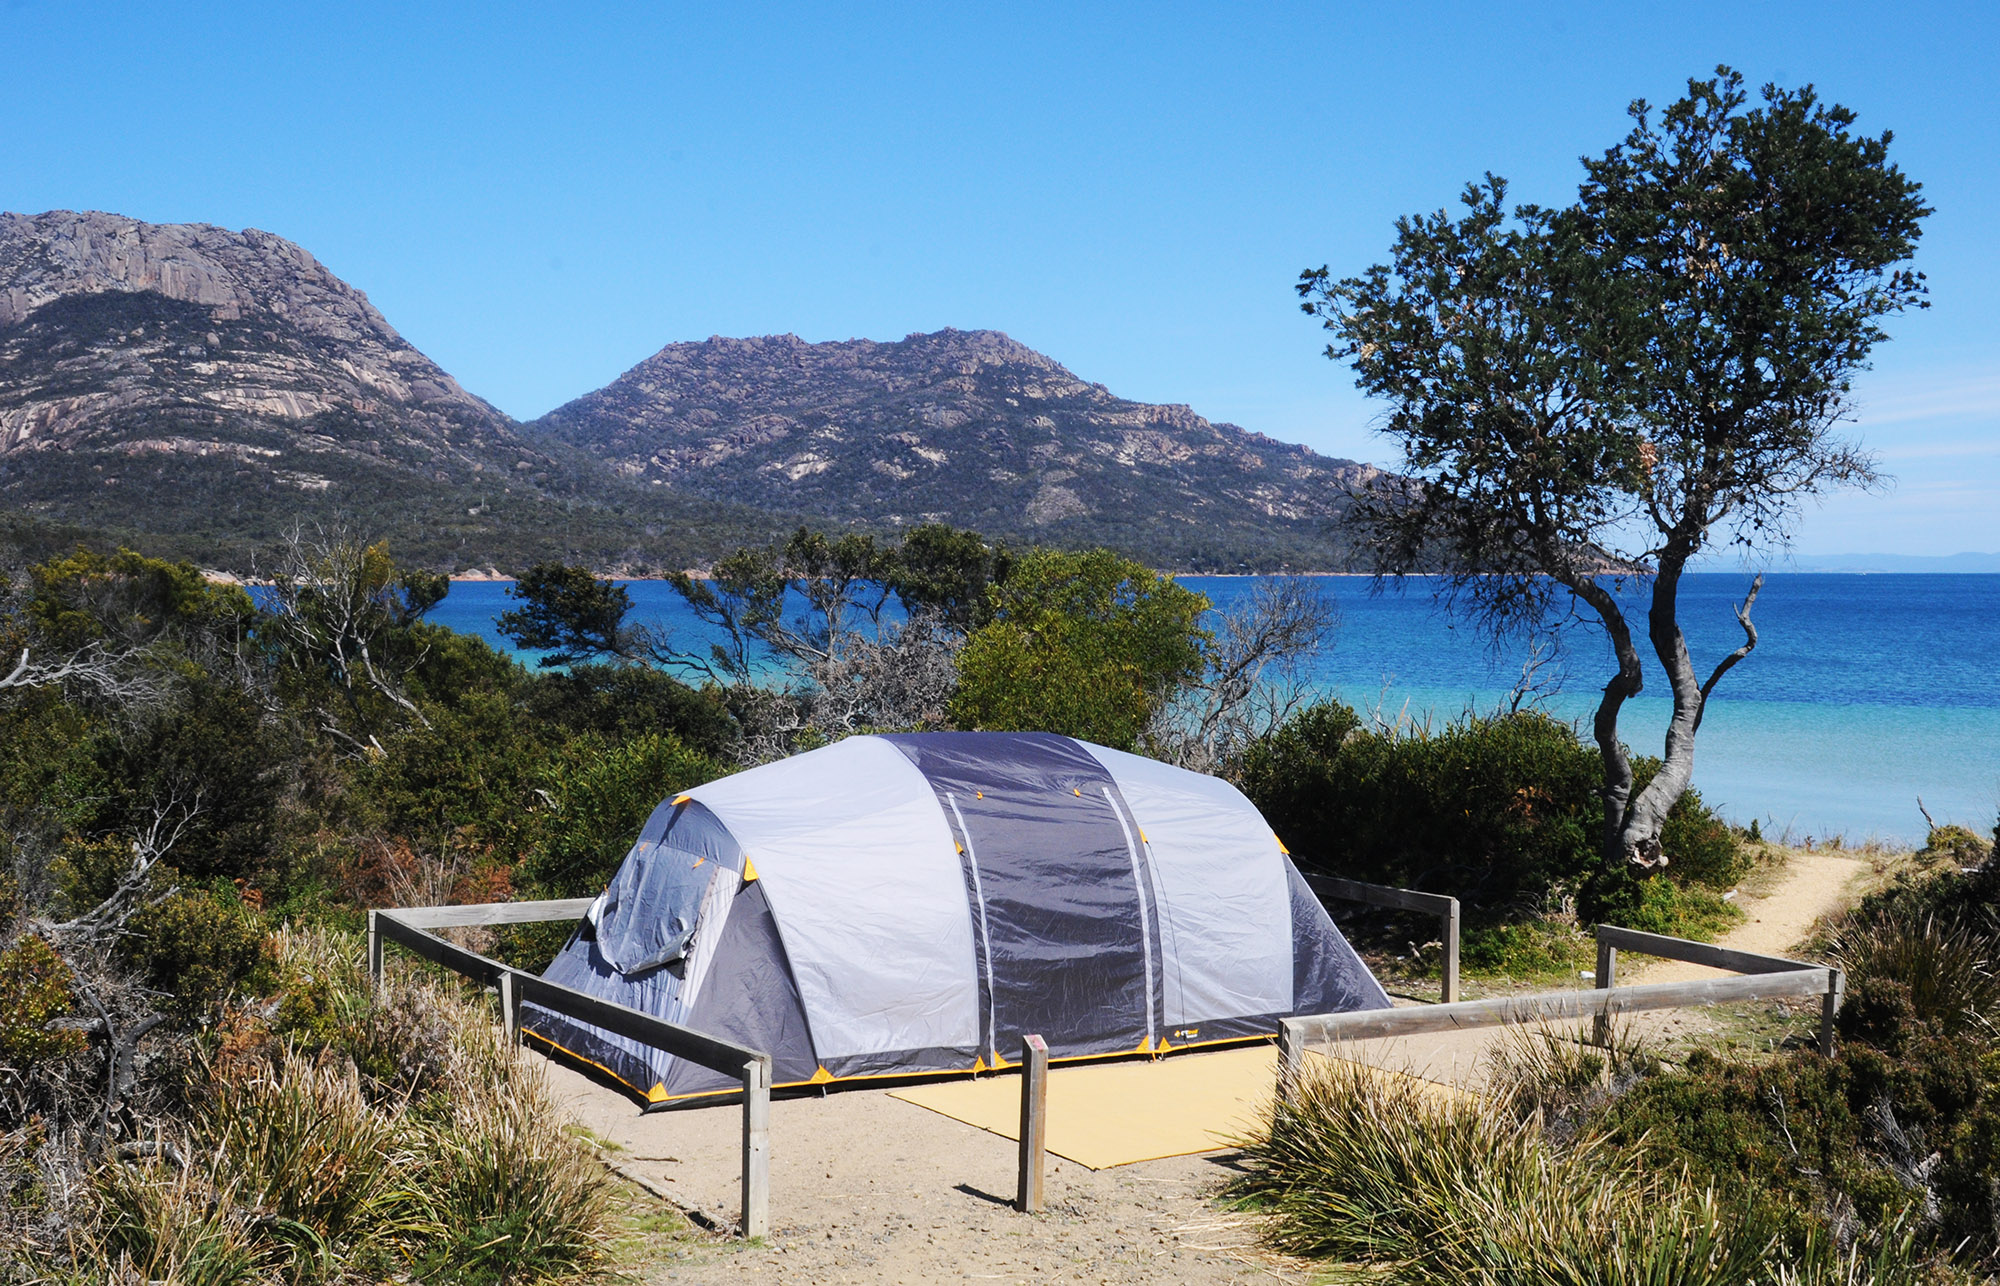 Richardsons Beach camping area